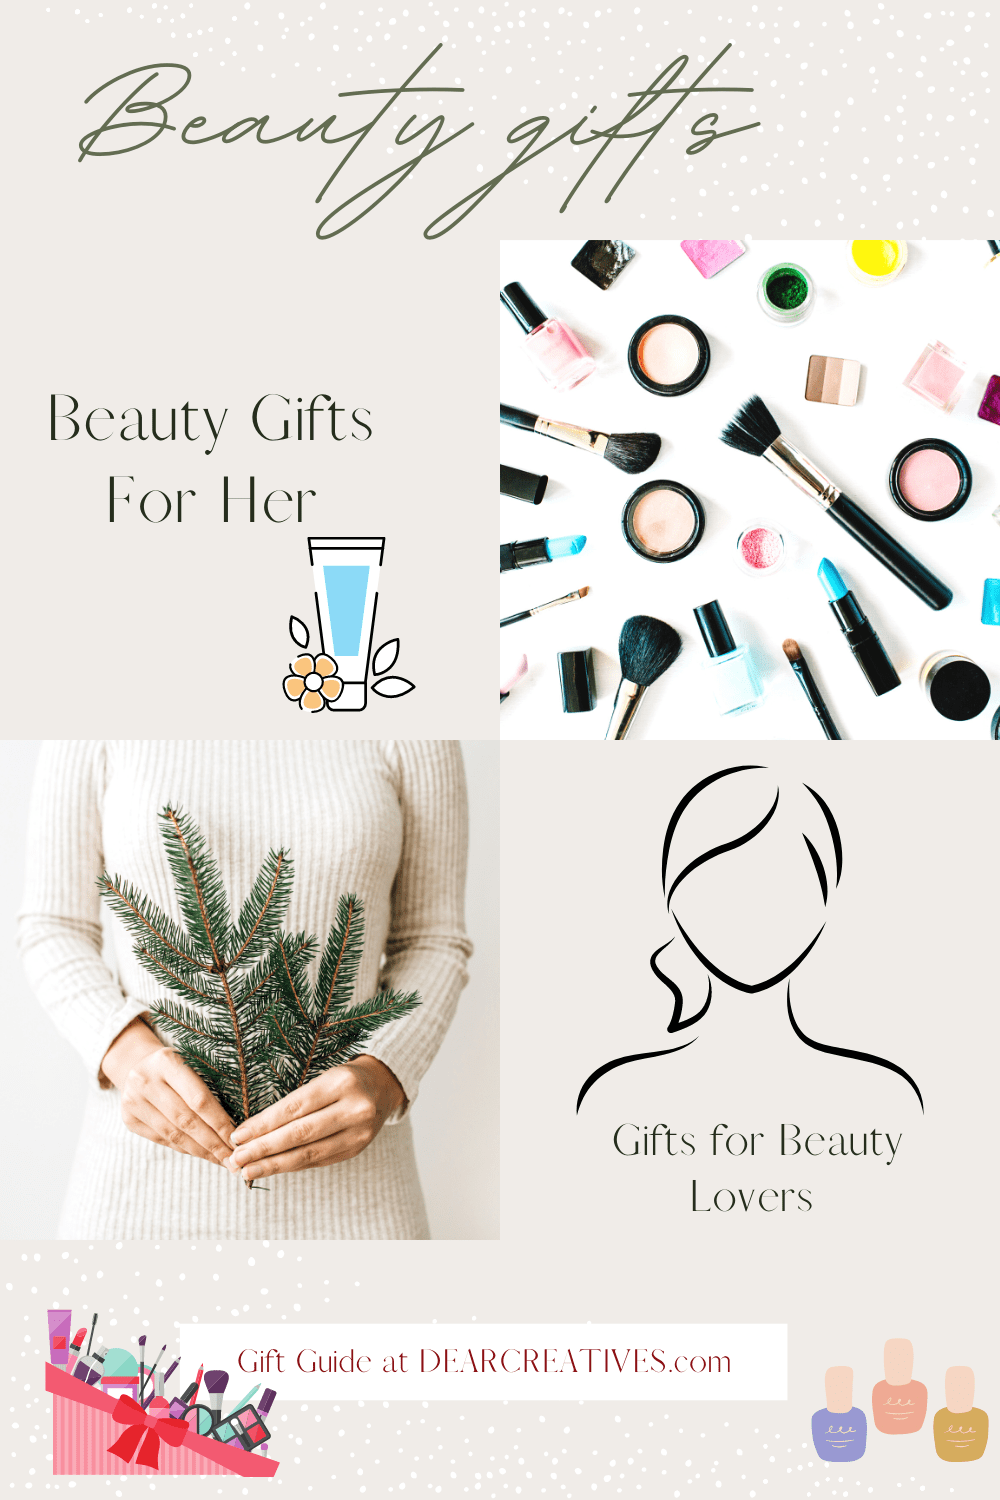 Beauty Gifts She Will Love Getting!